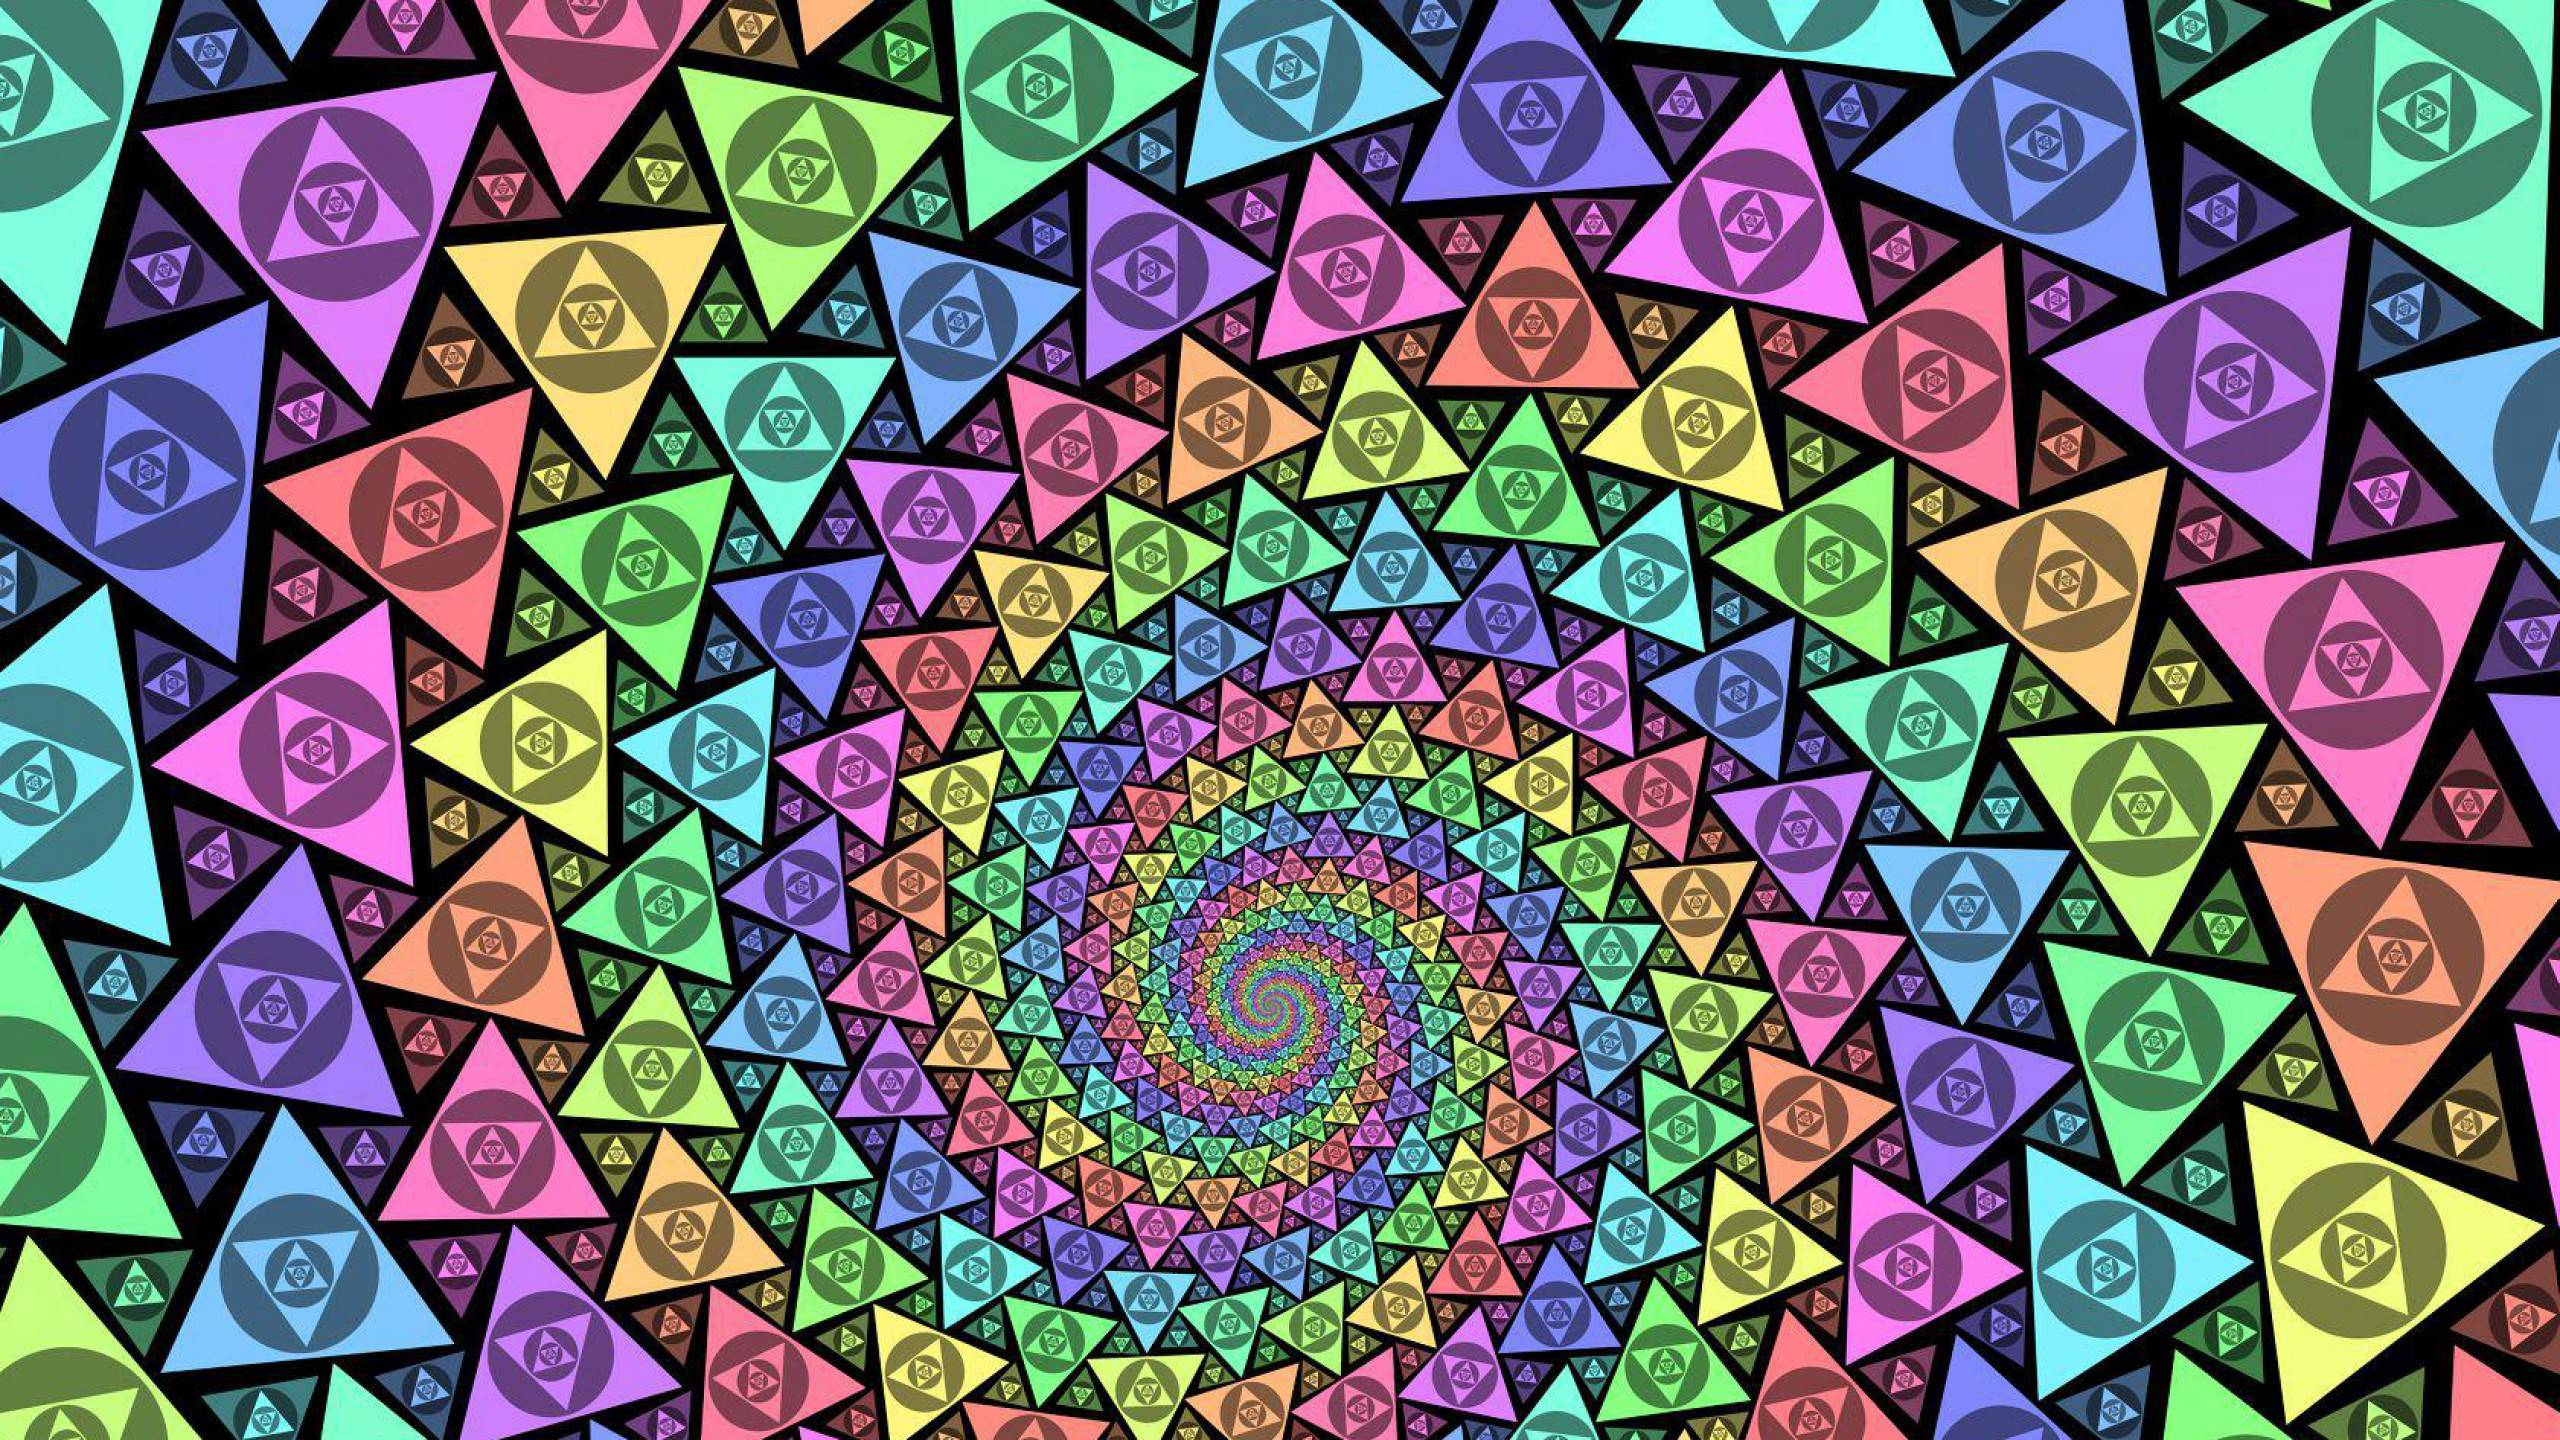 psychedelic hd 1080 wallpapers sexy - photo #18